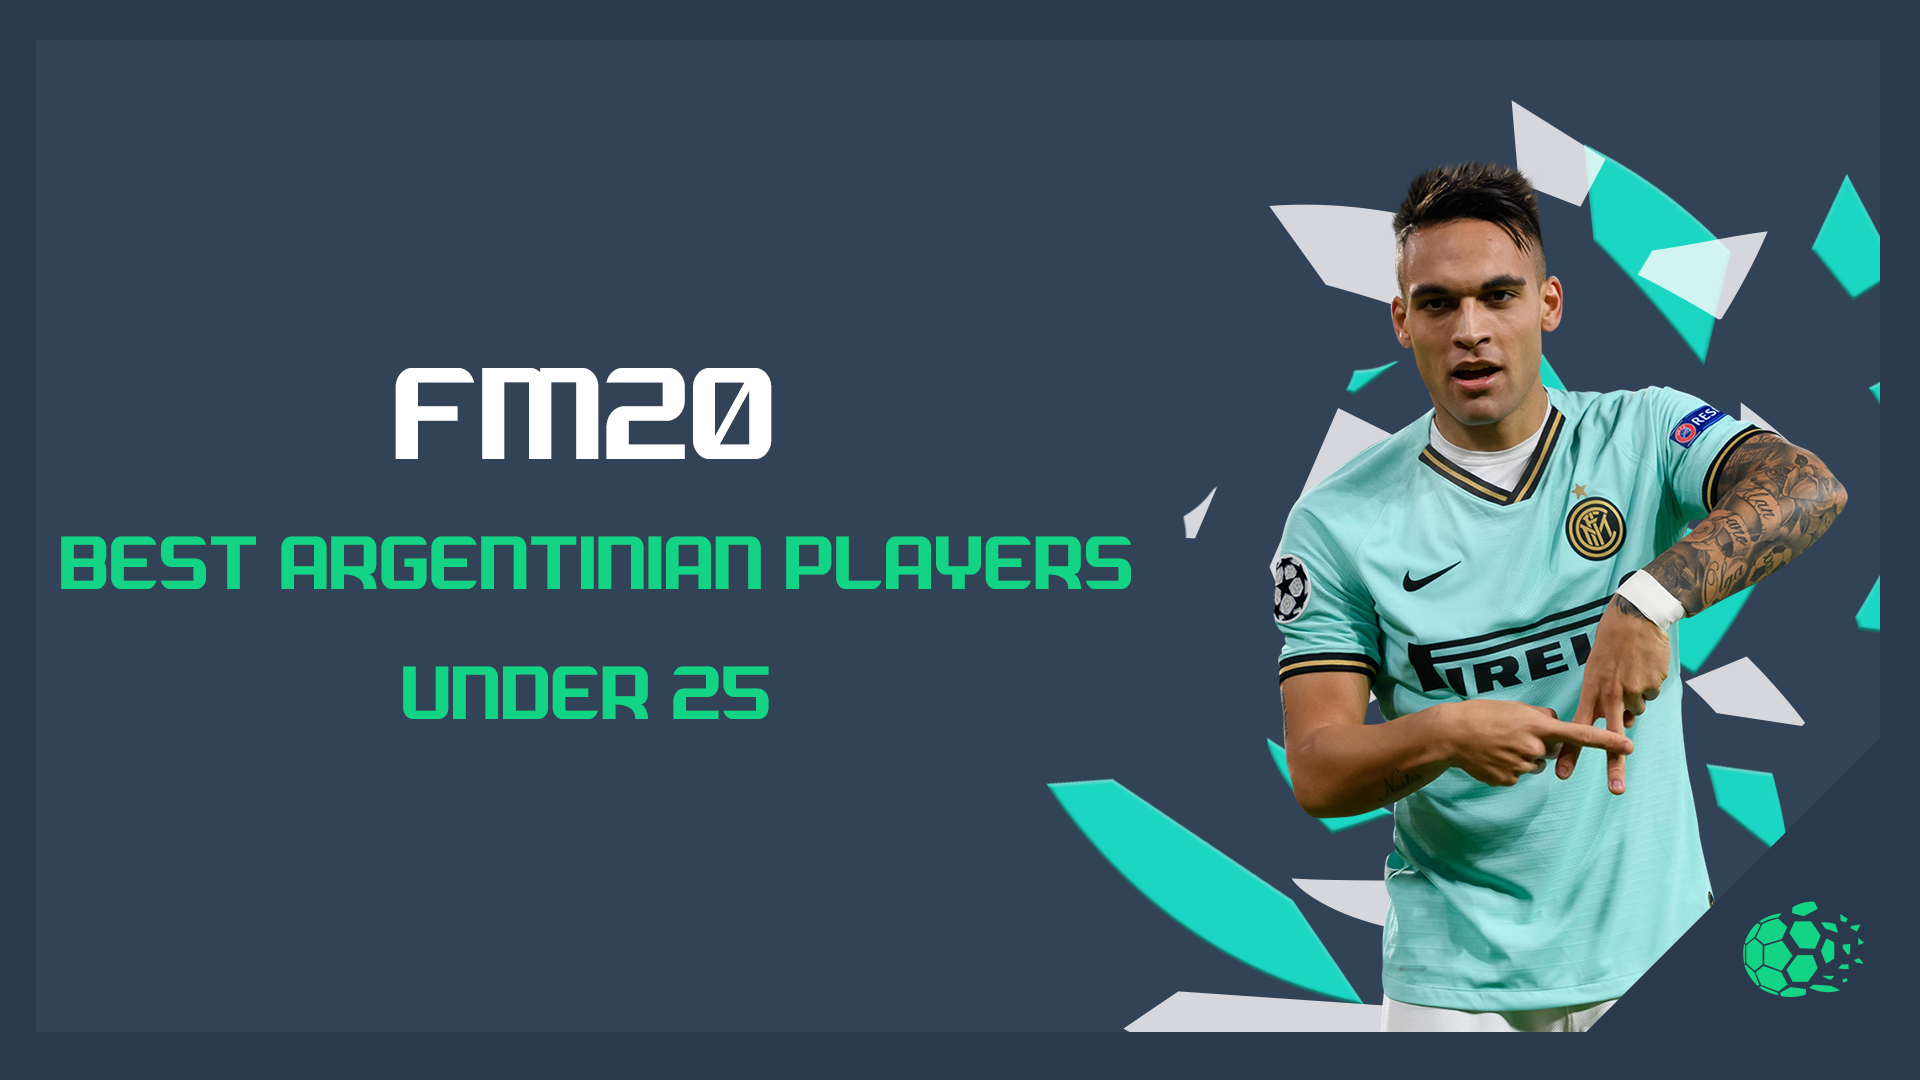 """FM20 FM20: Best U25 Argentinian Players"" feature image"